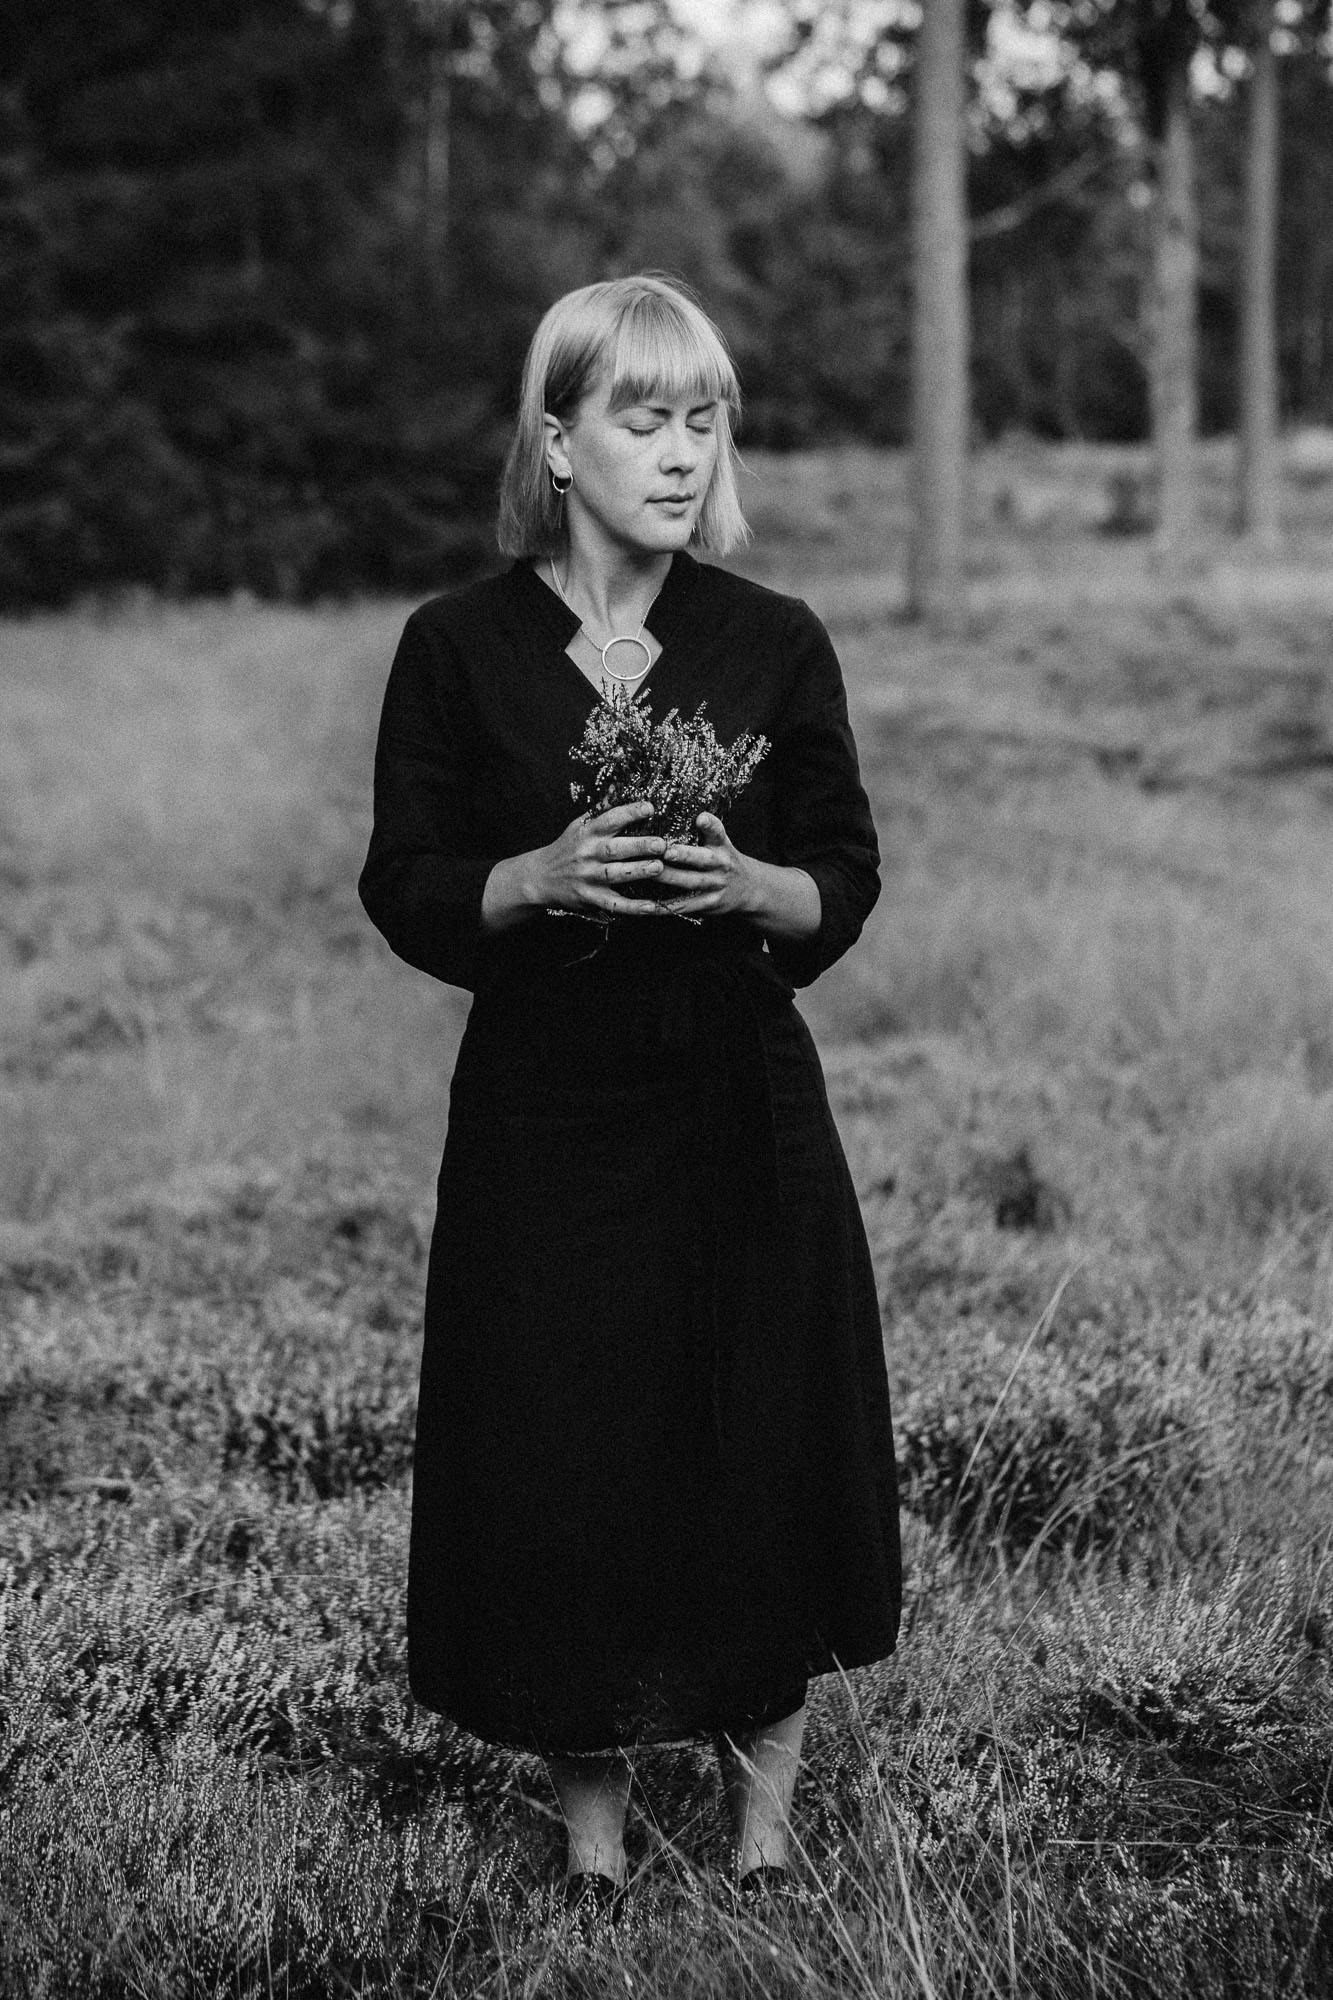 Me, August 2019, in the heather field.  (ID: A black and white photo of a woman in a black dress standing with her eyes closed and heather flowers in her hands in a field)